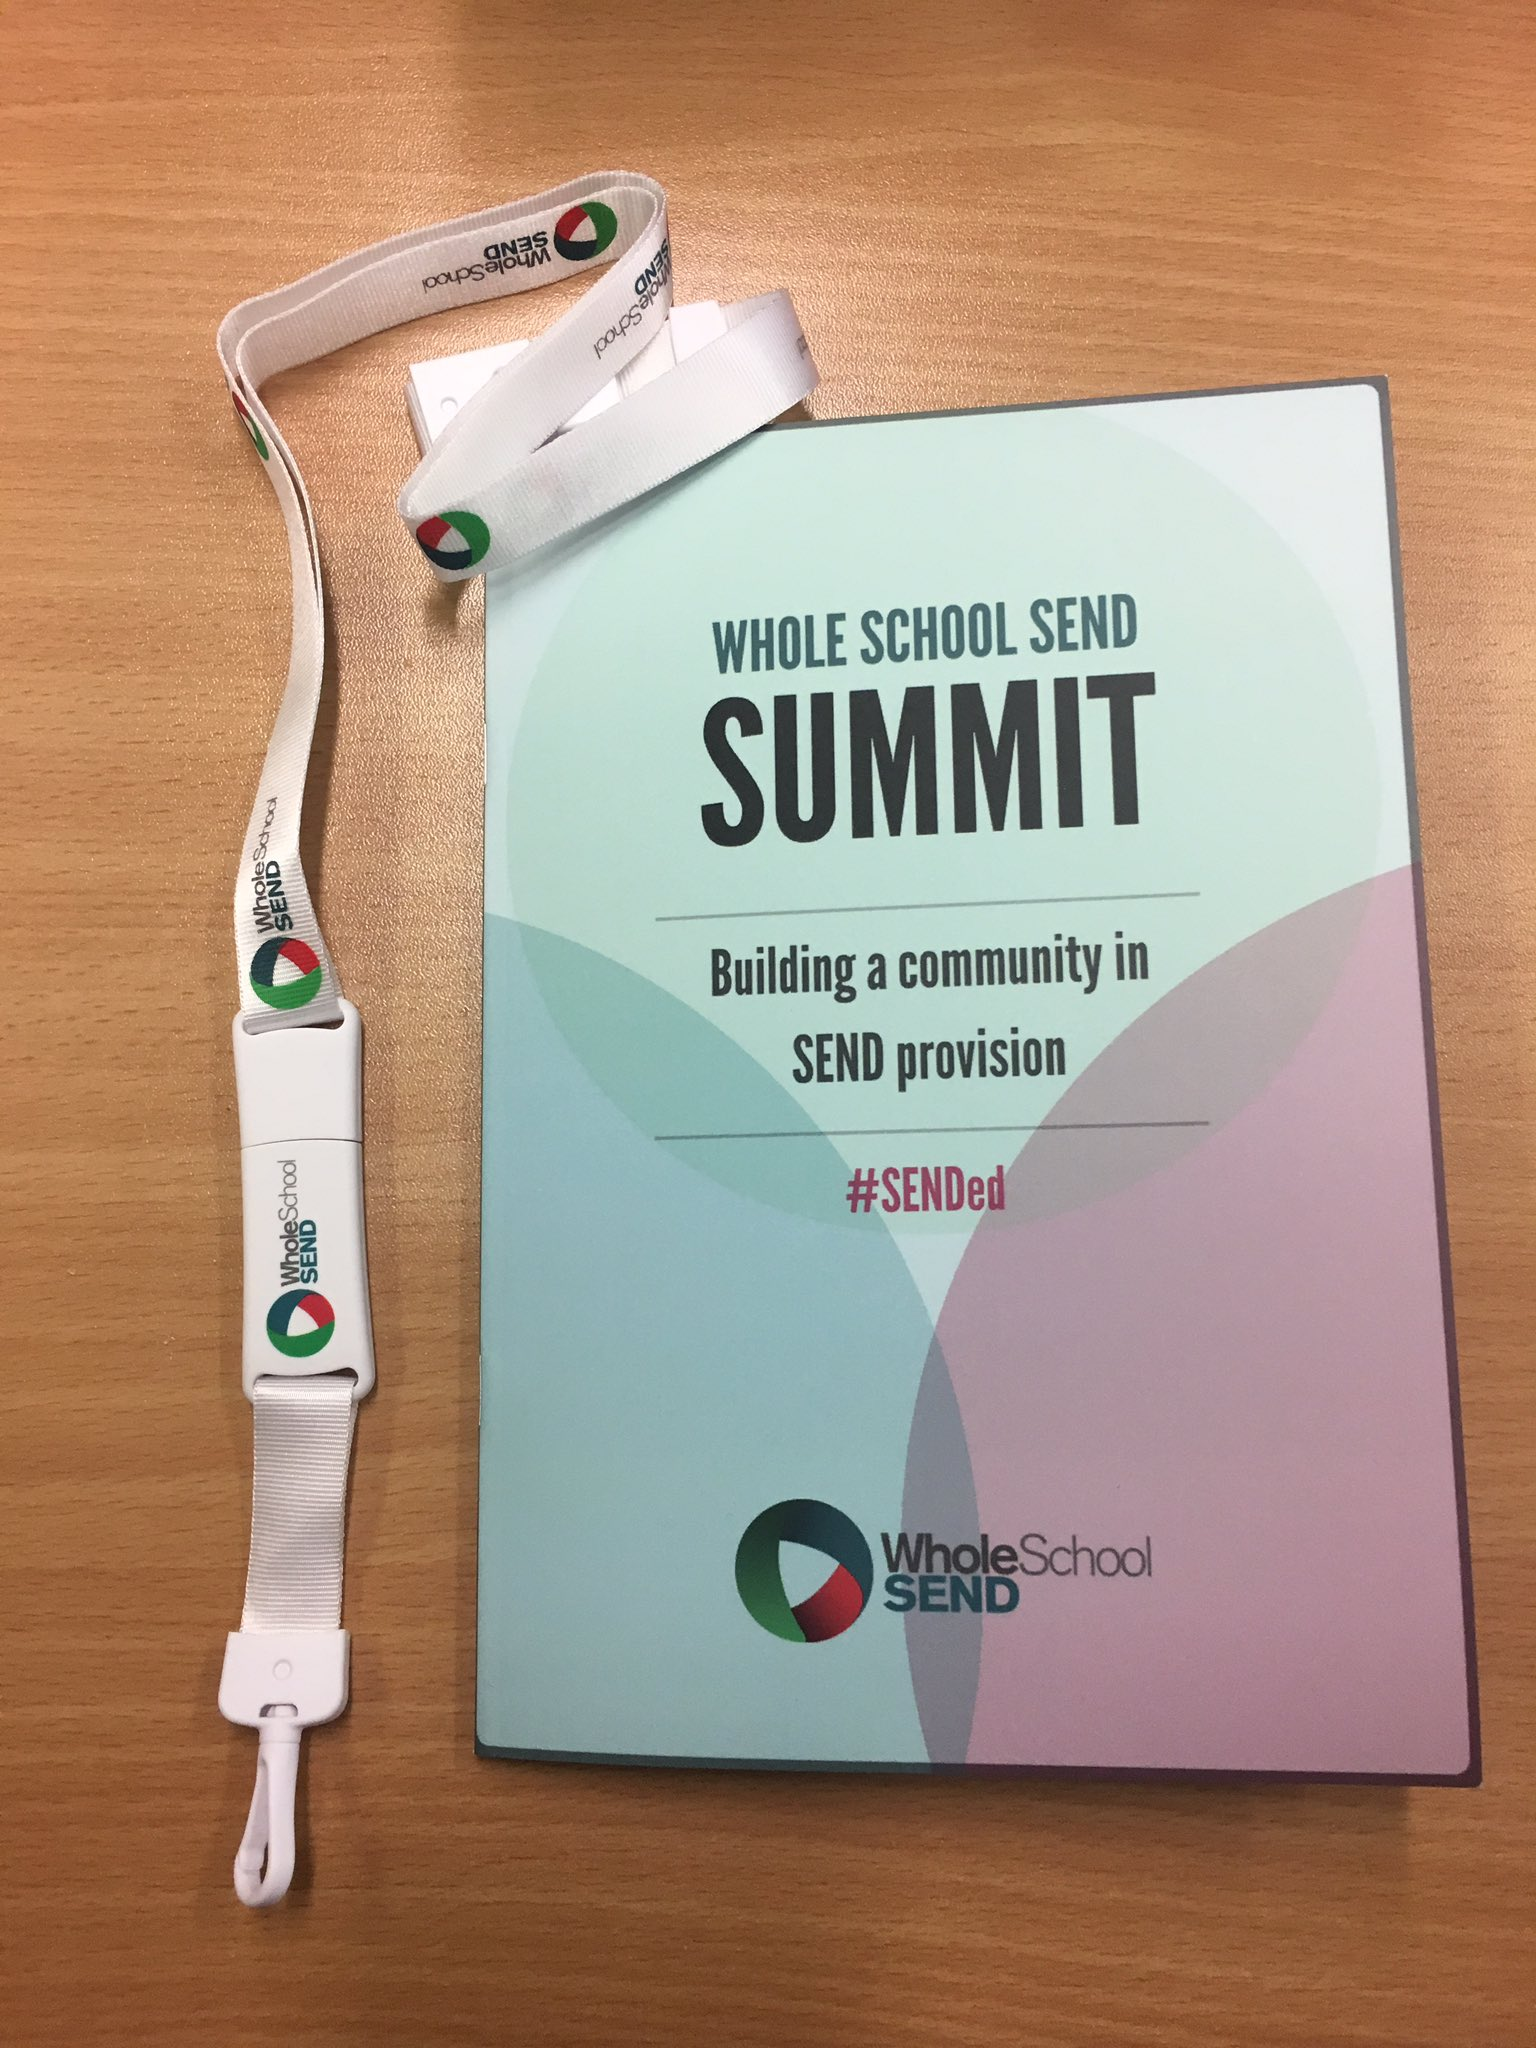 Very excited at @LLSinfo HQ for the @WholeSchoolSEND Summit tomorrow and to meet over 220 SEND enthusiasts! #SENDed #SENDsummit https://t.co/gMcC6w43Z4